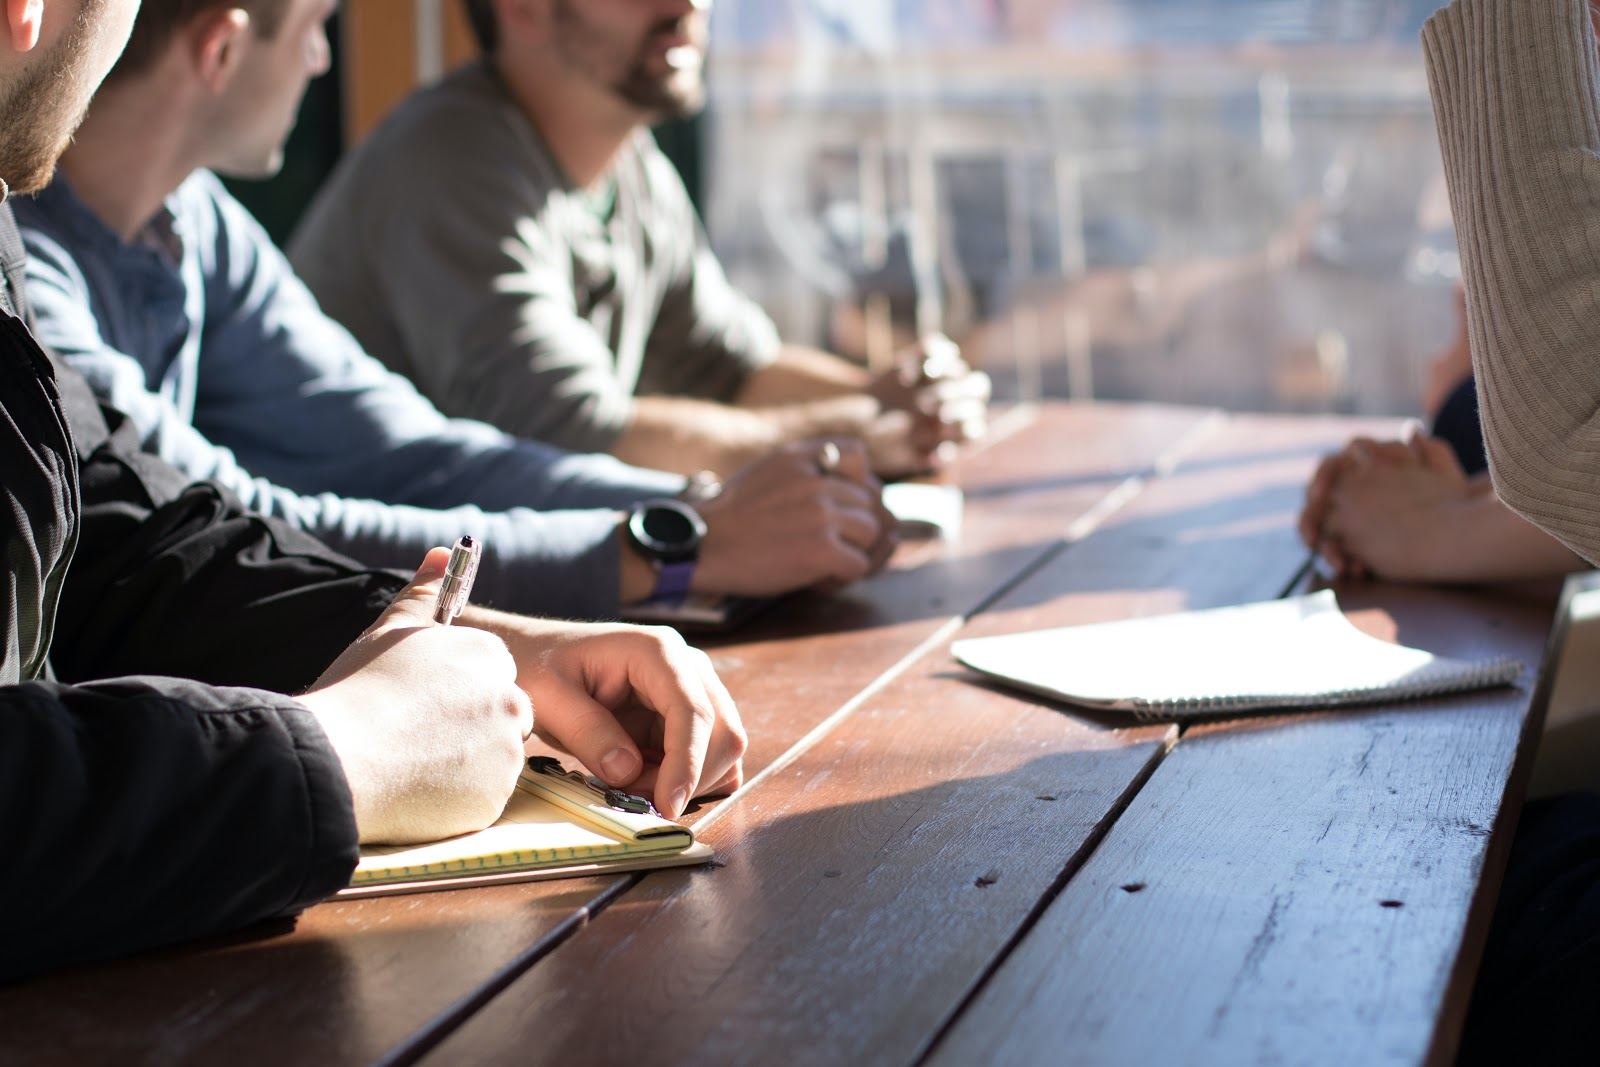 small business hiring tips : choose a new hire who is  a team player